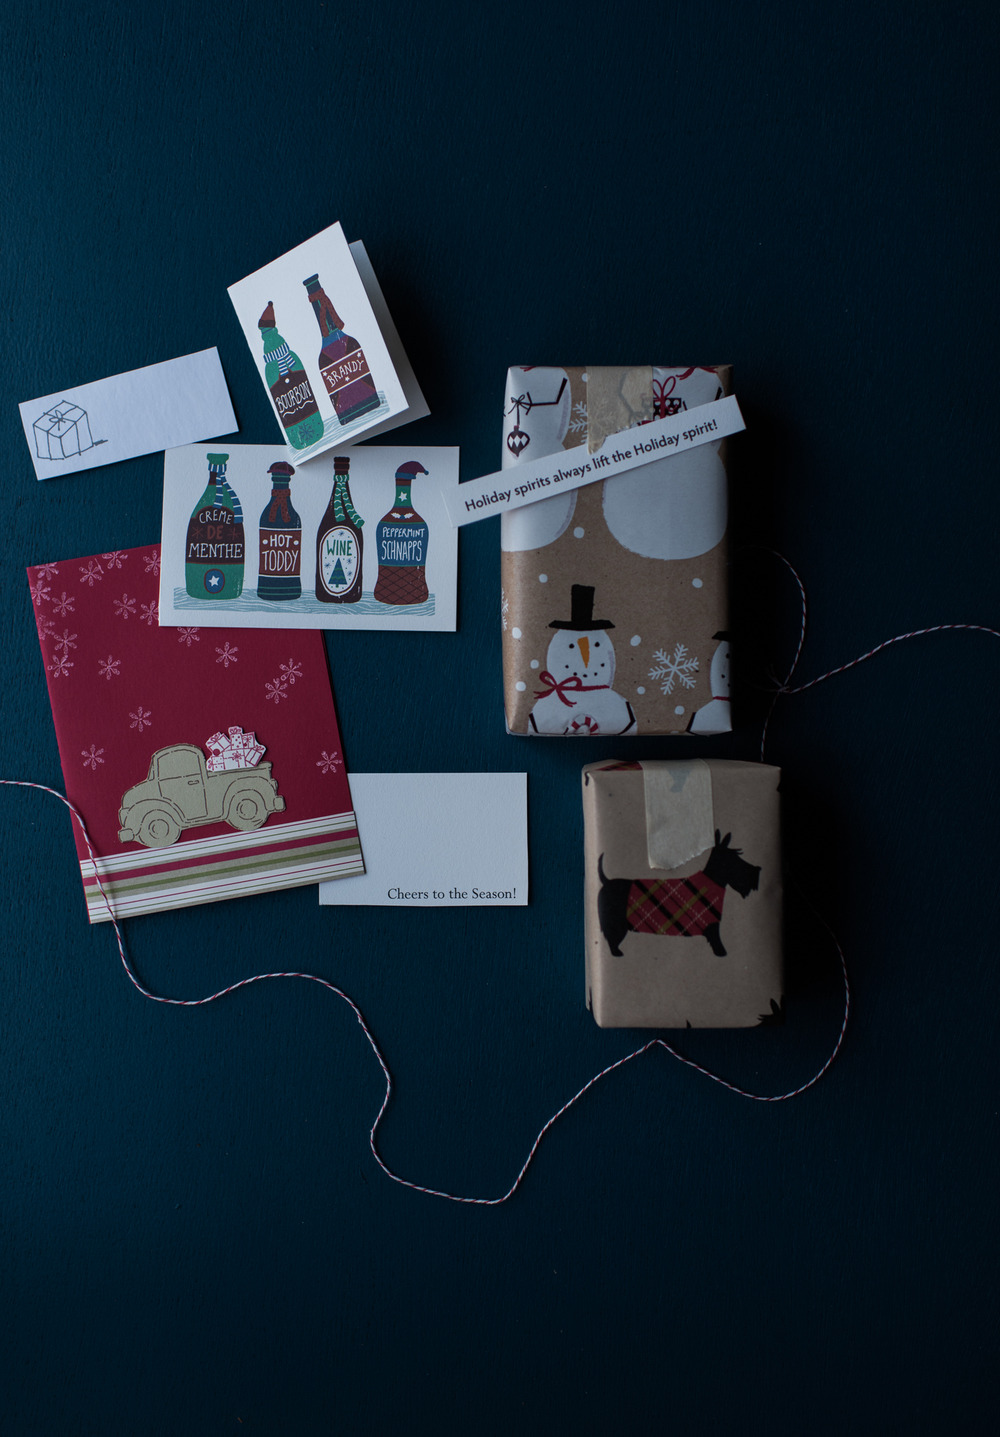 Asheville Folk: A Thrifty Christmas by Chelsea Lane. Does anyone else do this? Or just my mom? Holiday cards from the ghosts of Christmas past turned into gift tags for the Christmas present.